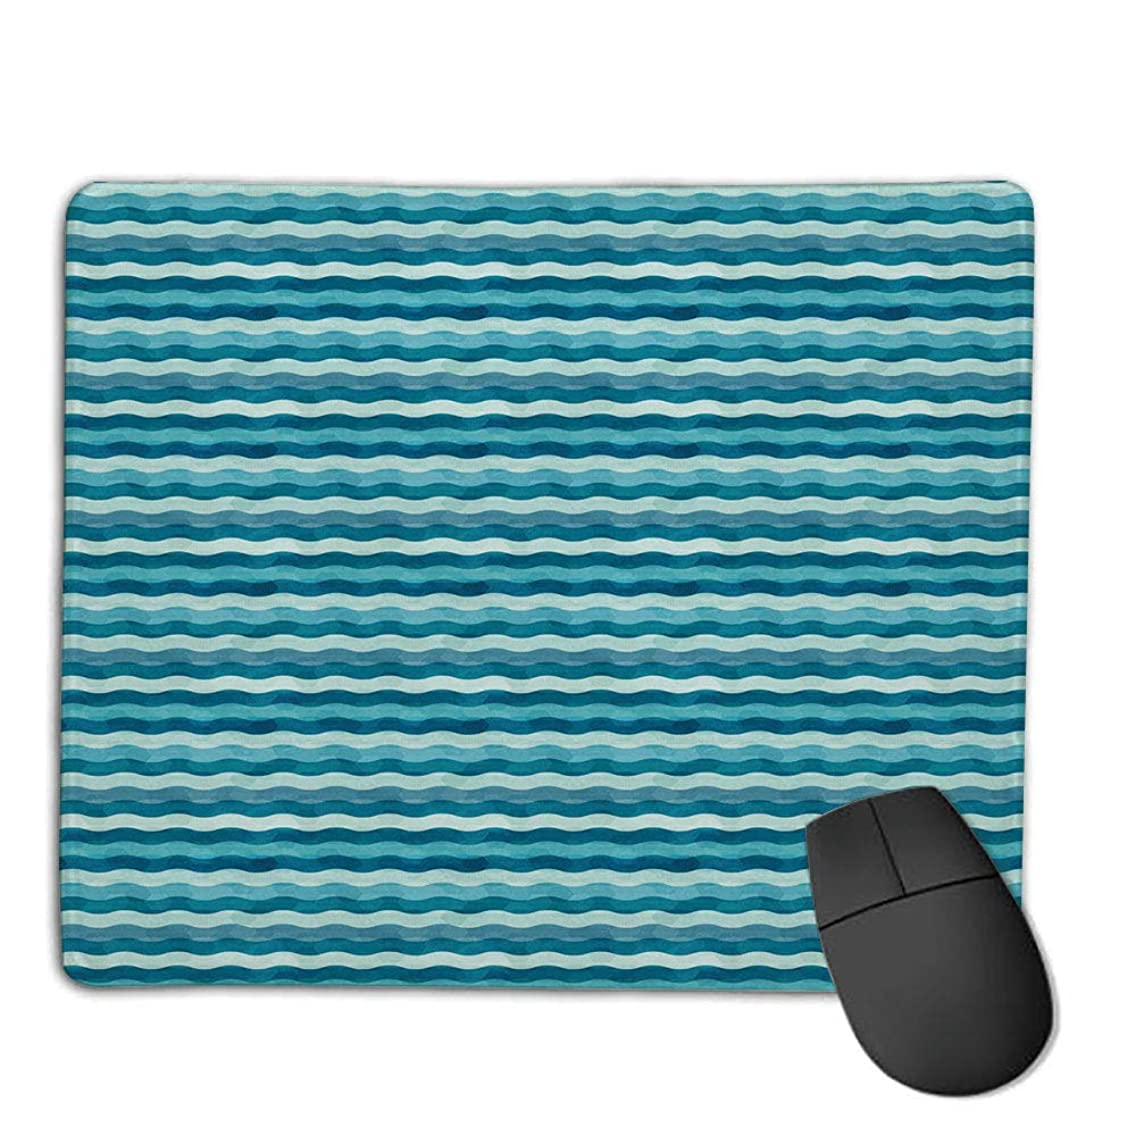 Comfortable Mouse Pad Quality Selection,Abstract,Ocean Themed Wave Design Marine Artwork Aquatic Color Palette Horizontal Lines,Teal Turquoise,Consoles More Enjoy Precise & Smooth Operating Experien